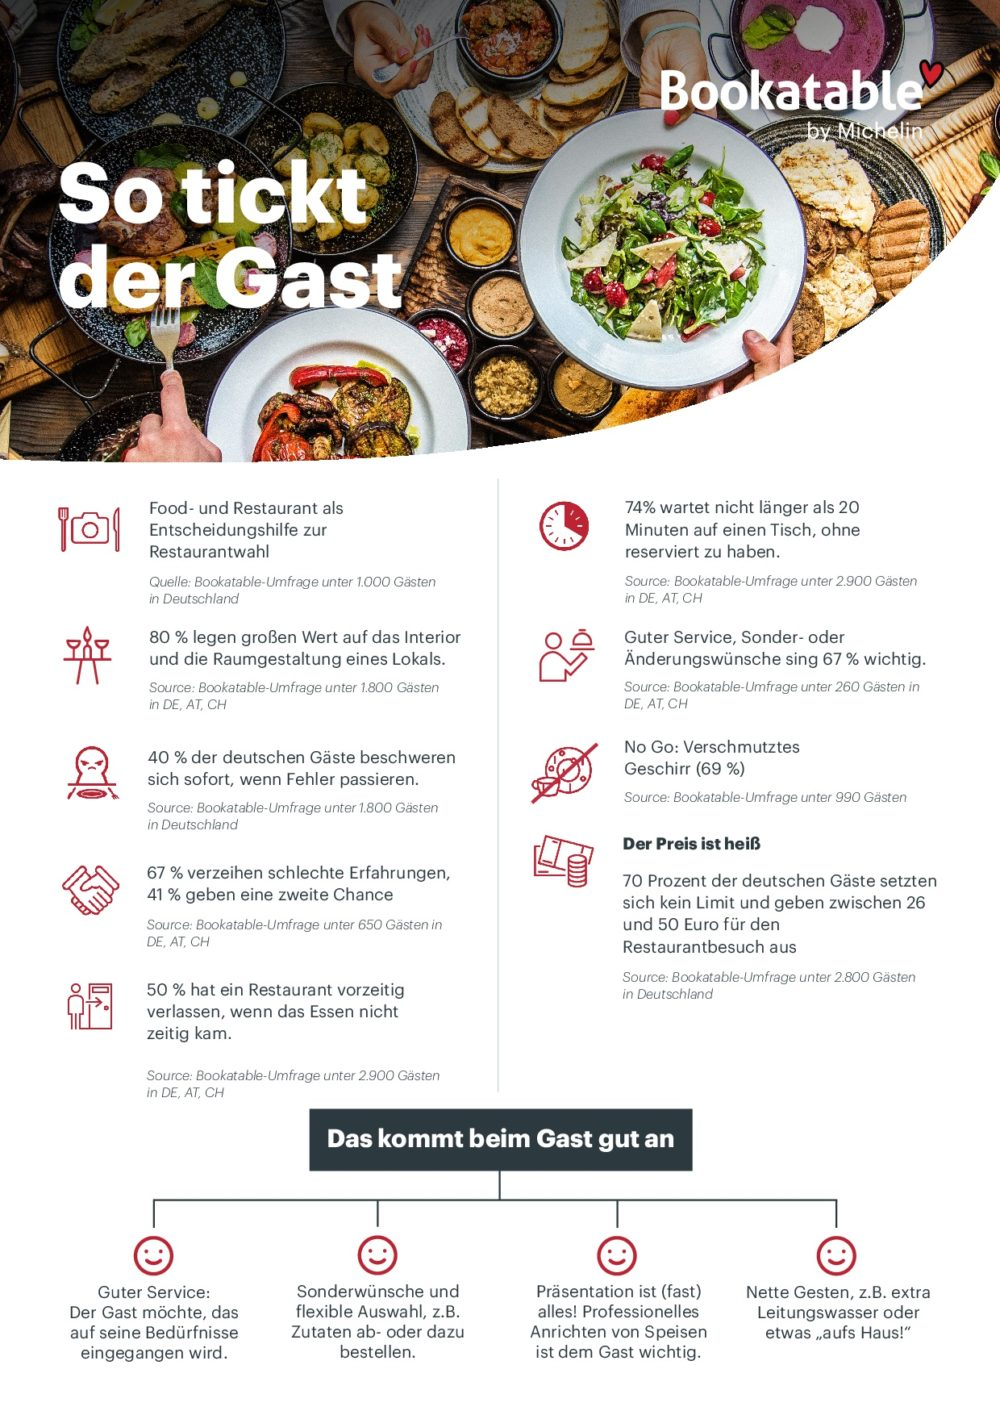 Gäste schätzen es, wenn das Restaurant flexibel auf ihre Sonderwünsche eingeht. (Grafik: obs/Bookatable GmbH & Co.KG/Bookatable by Michelin)